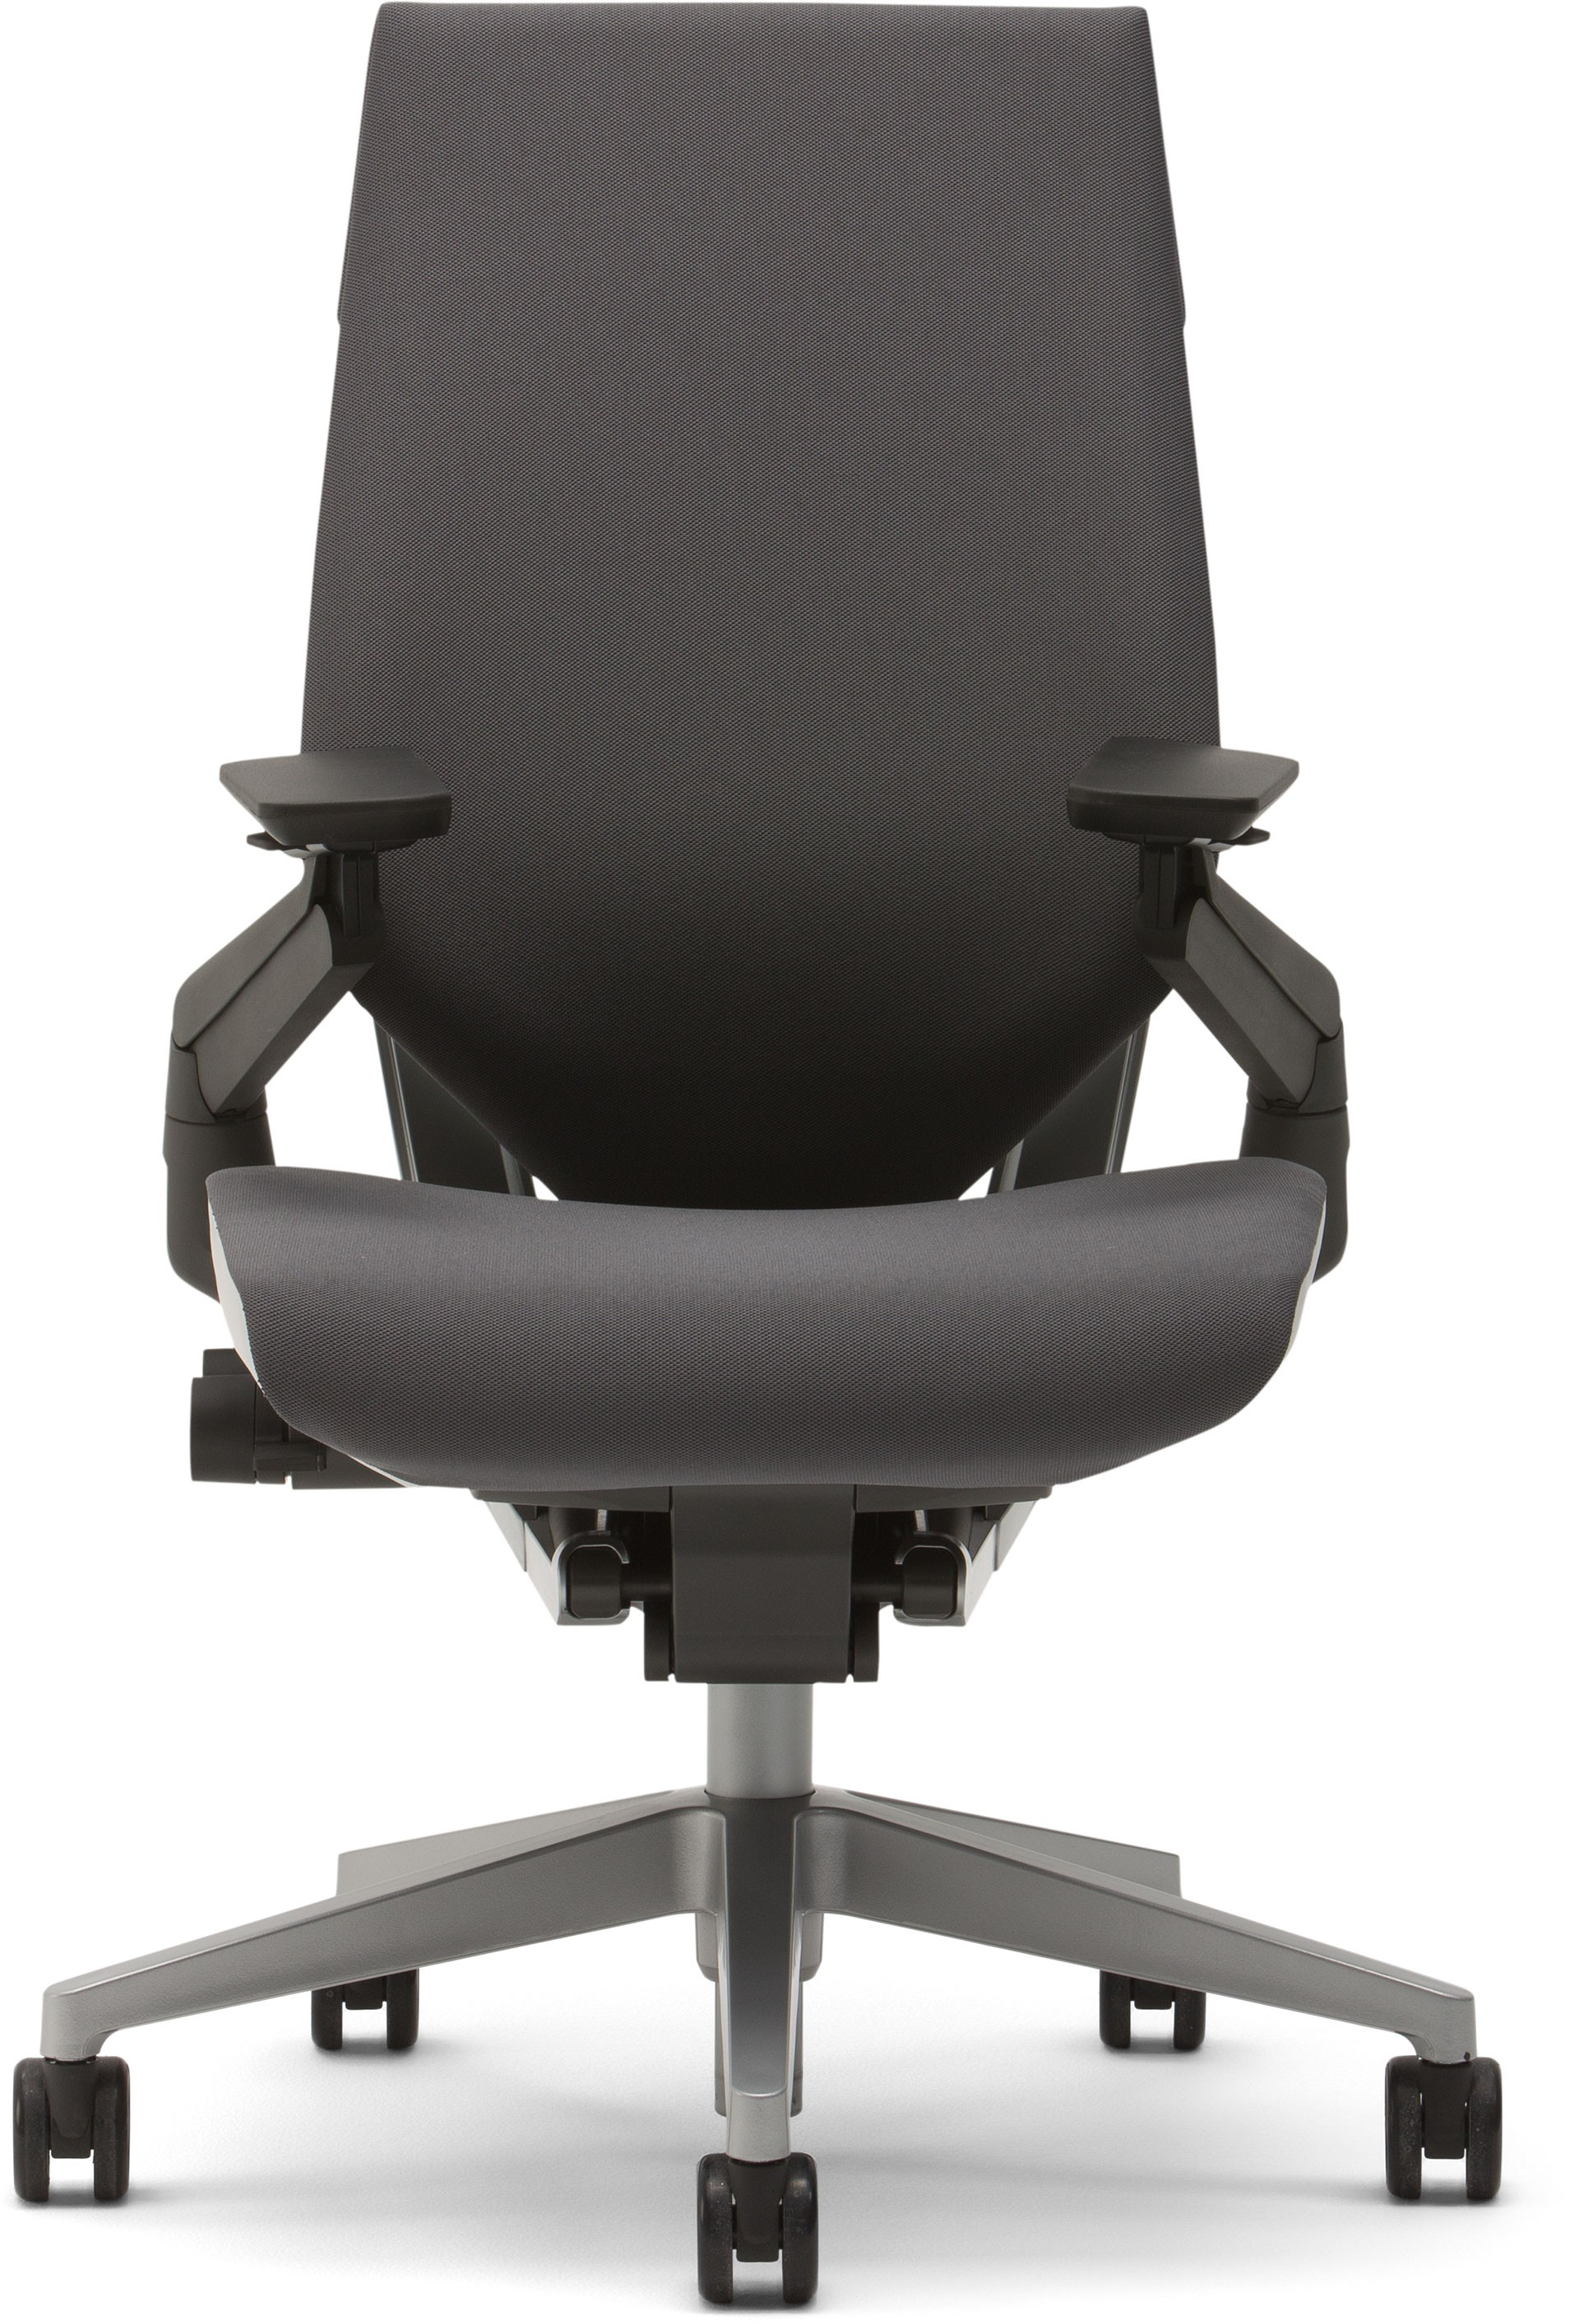 Steelcase Gesture Chair Front